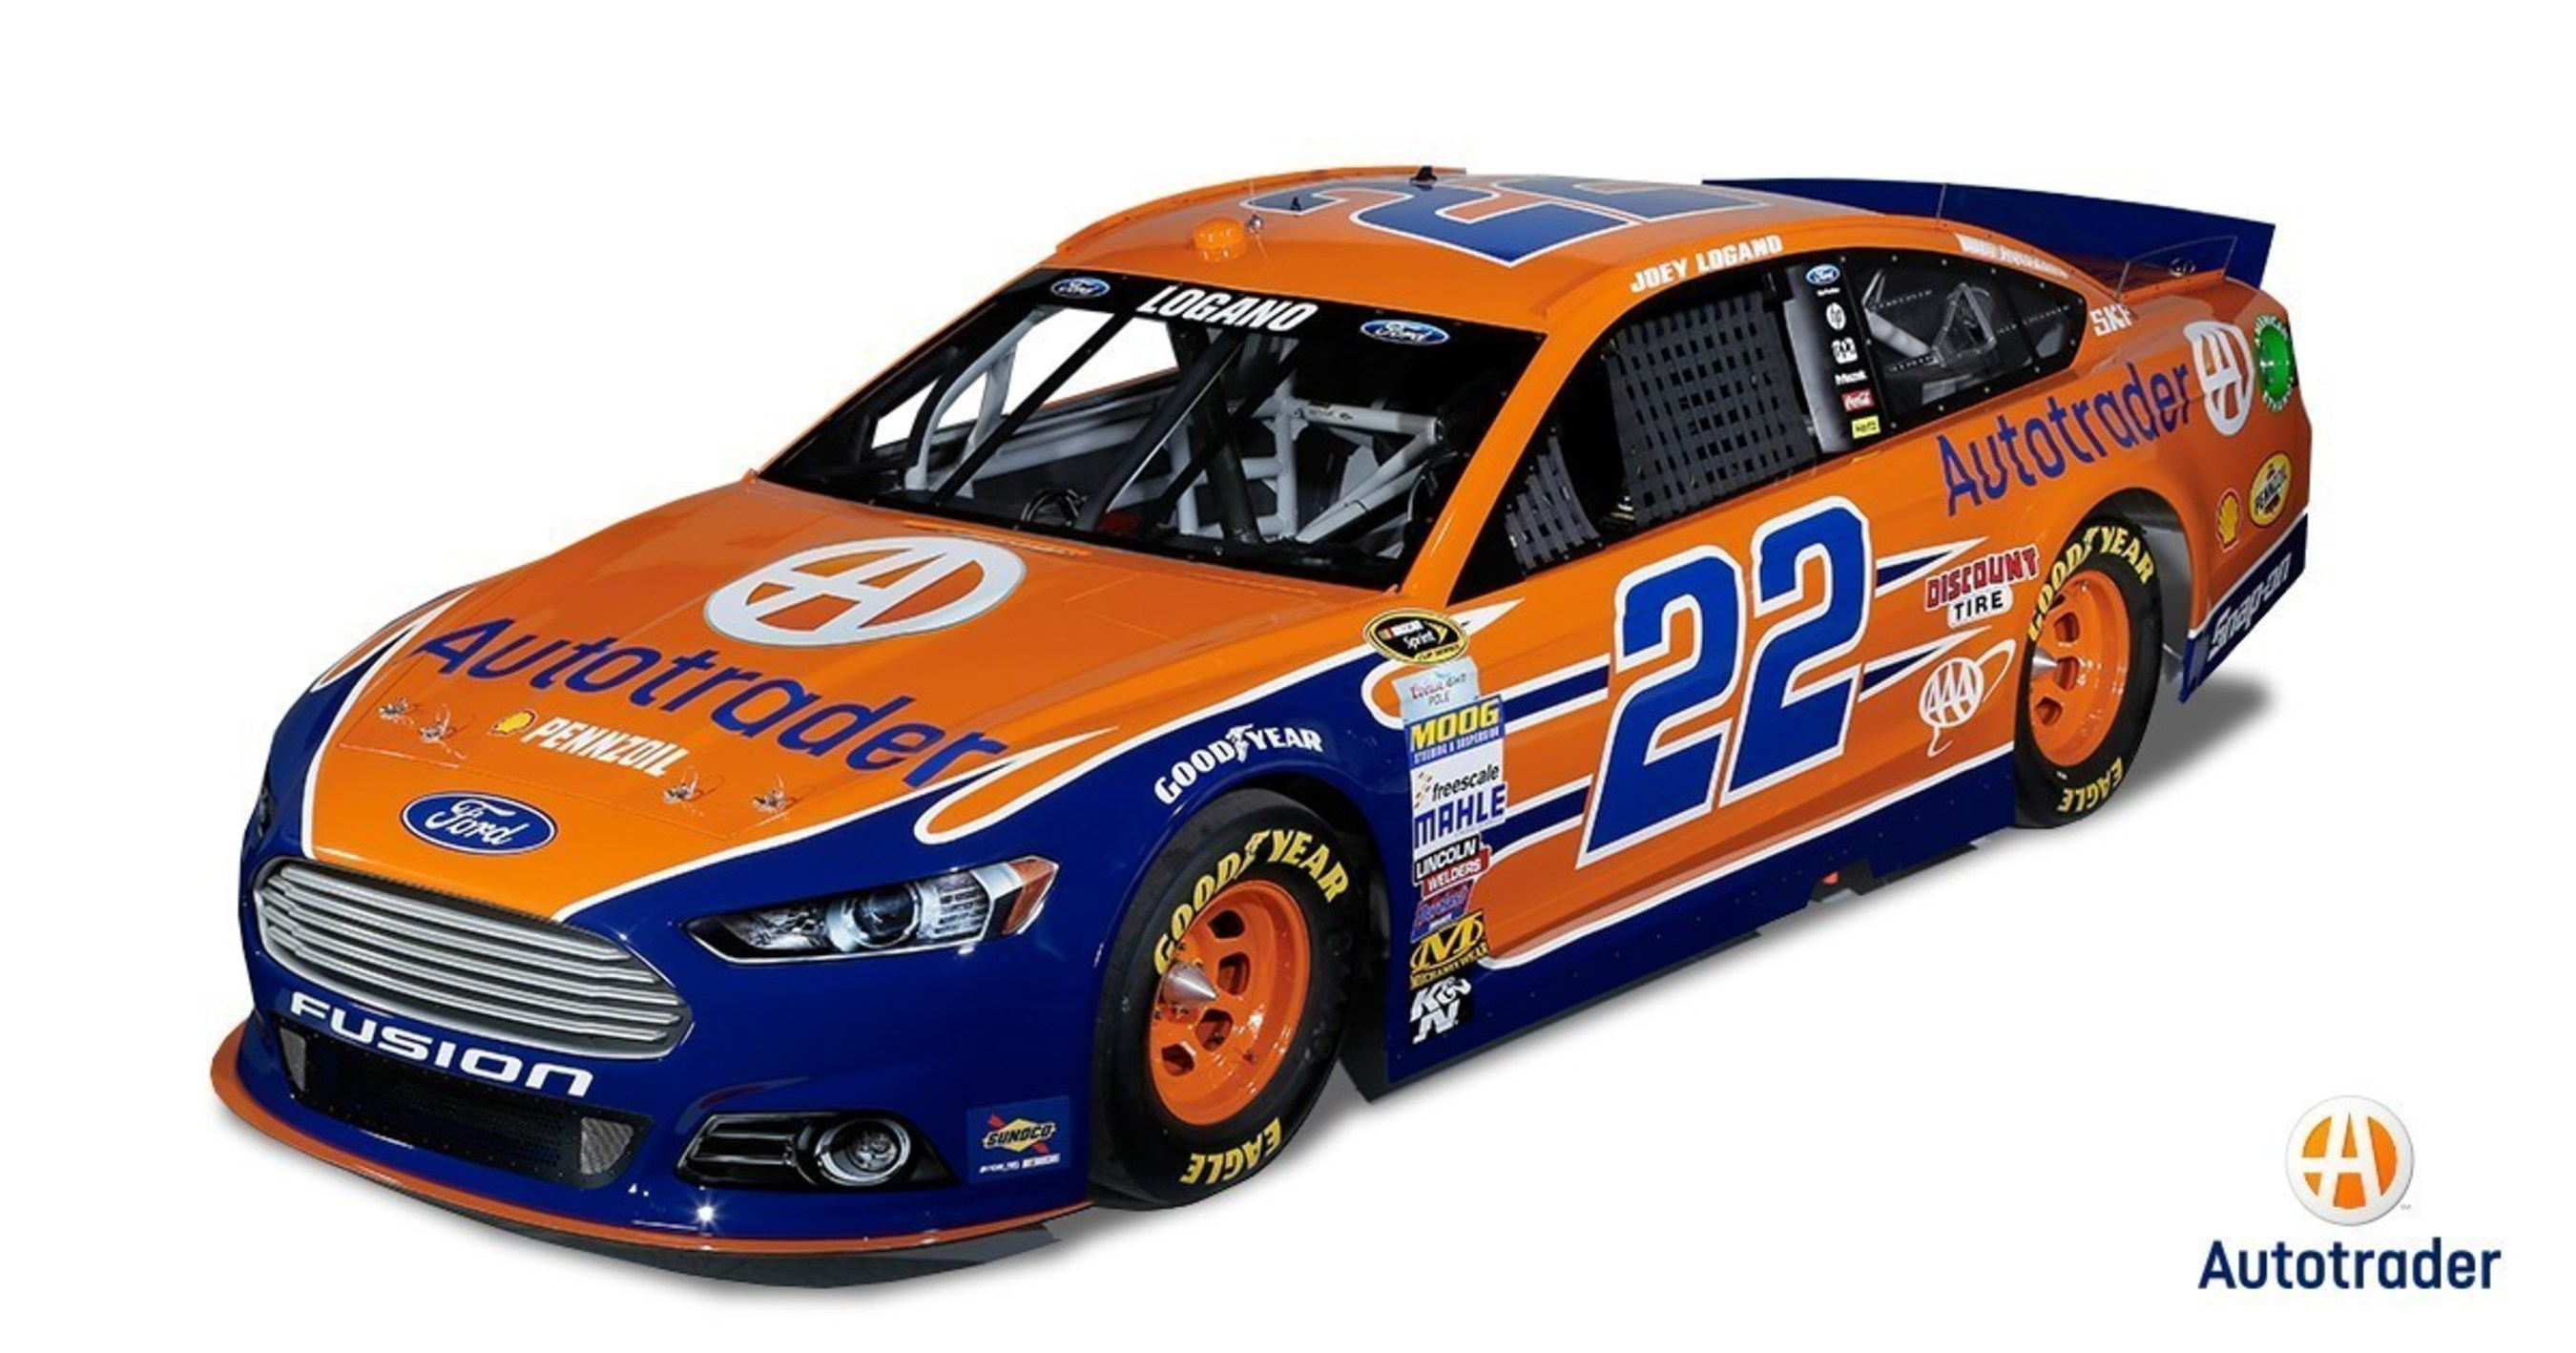 Autotrader Enlists Stars of 'The Dukes of Hazzard' to Celebrate the Company's New Logo at Bristol Motor Speedway